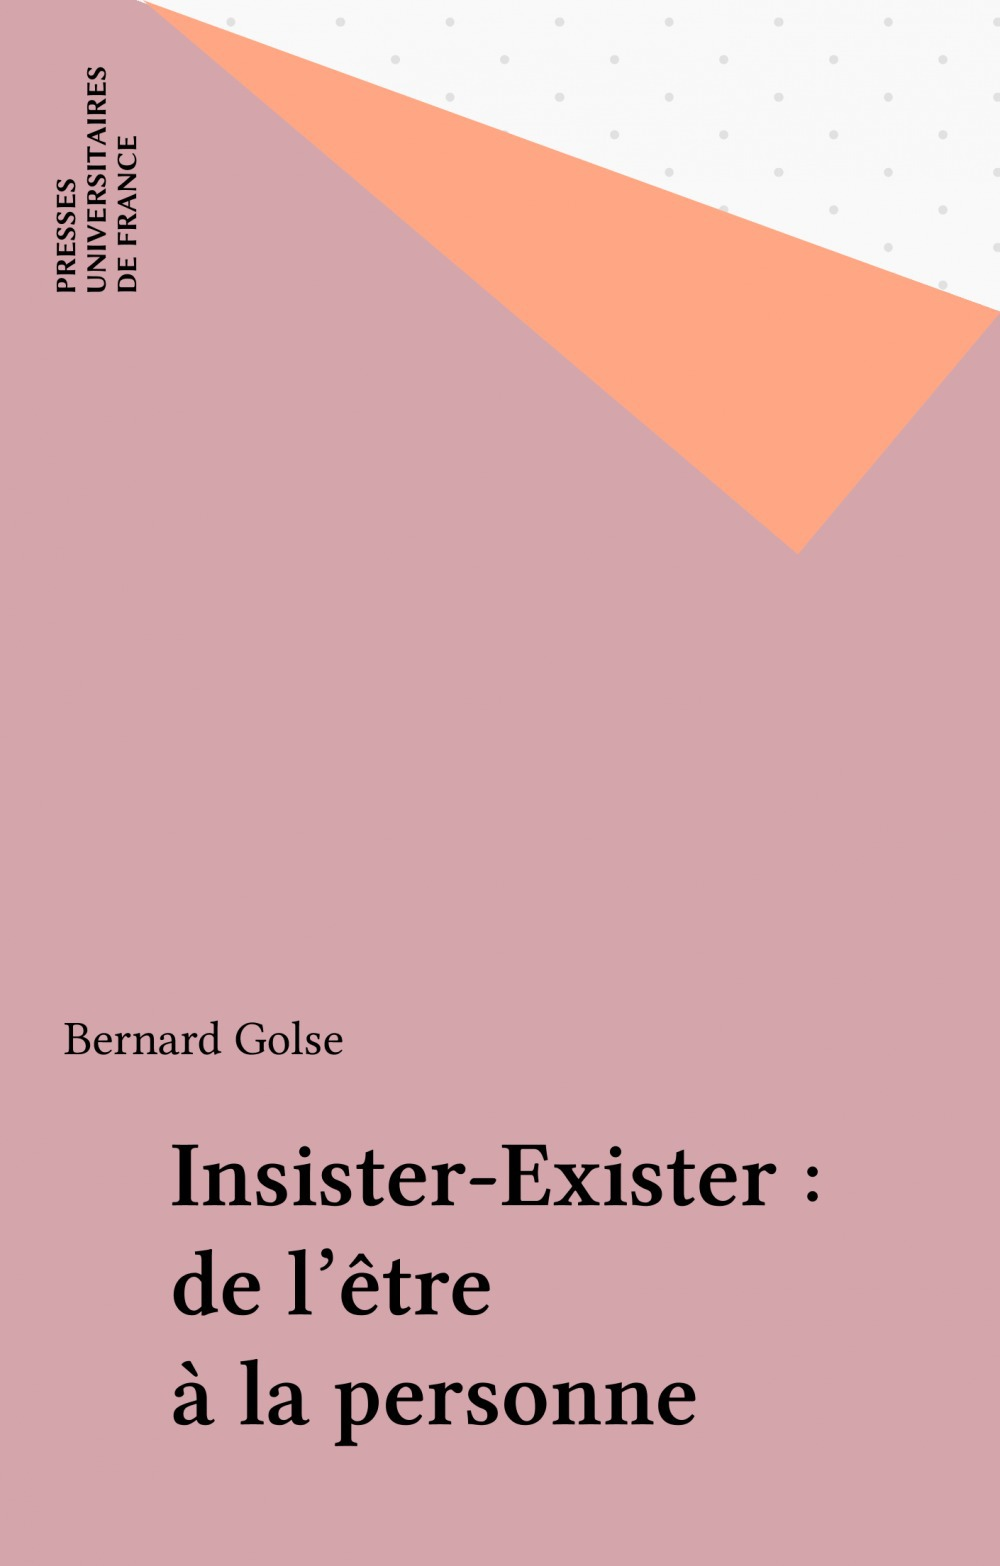 Insister exister